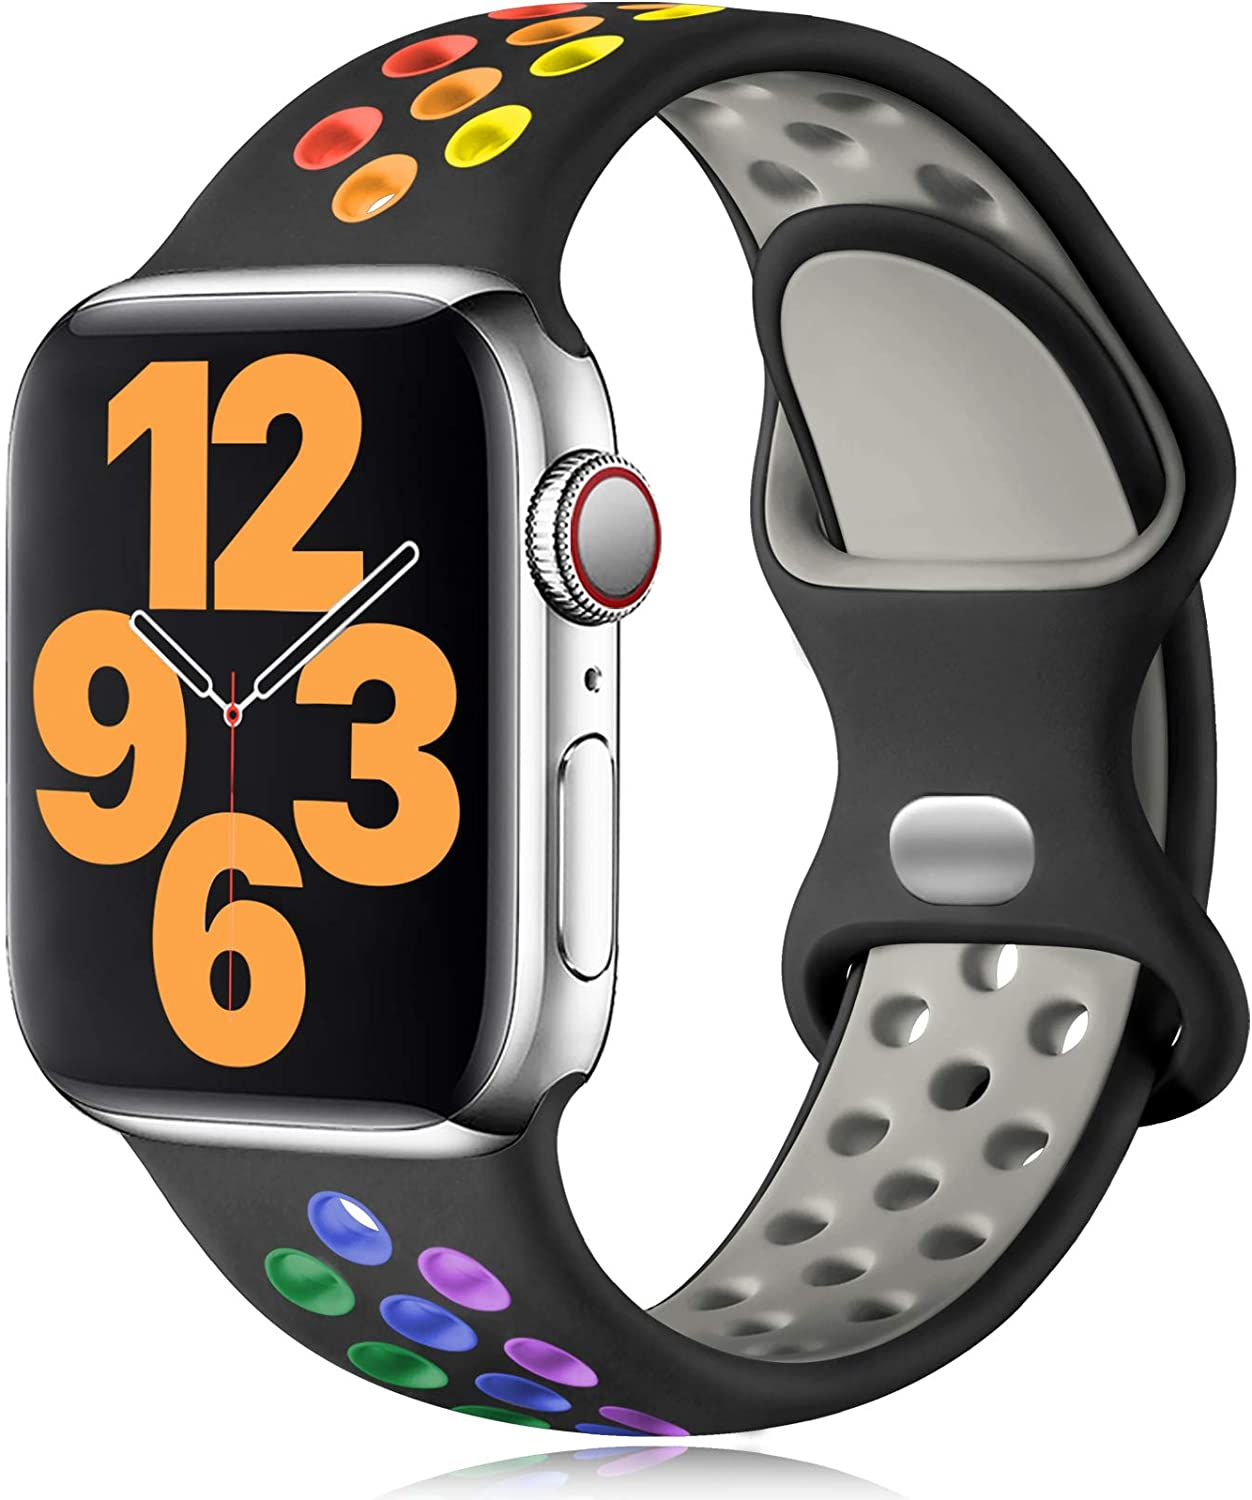 Vcegari Sports Bands Compatible with Apple Watch 40mm Women, iWatch 38mm Band Womens, Durable Breathable Silicone Strap for iWatch Series 6 5 4 3 2 1, Black/Rainbow S/M